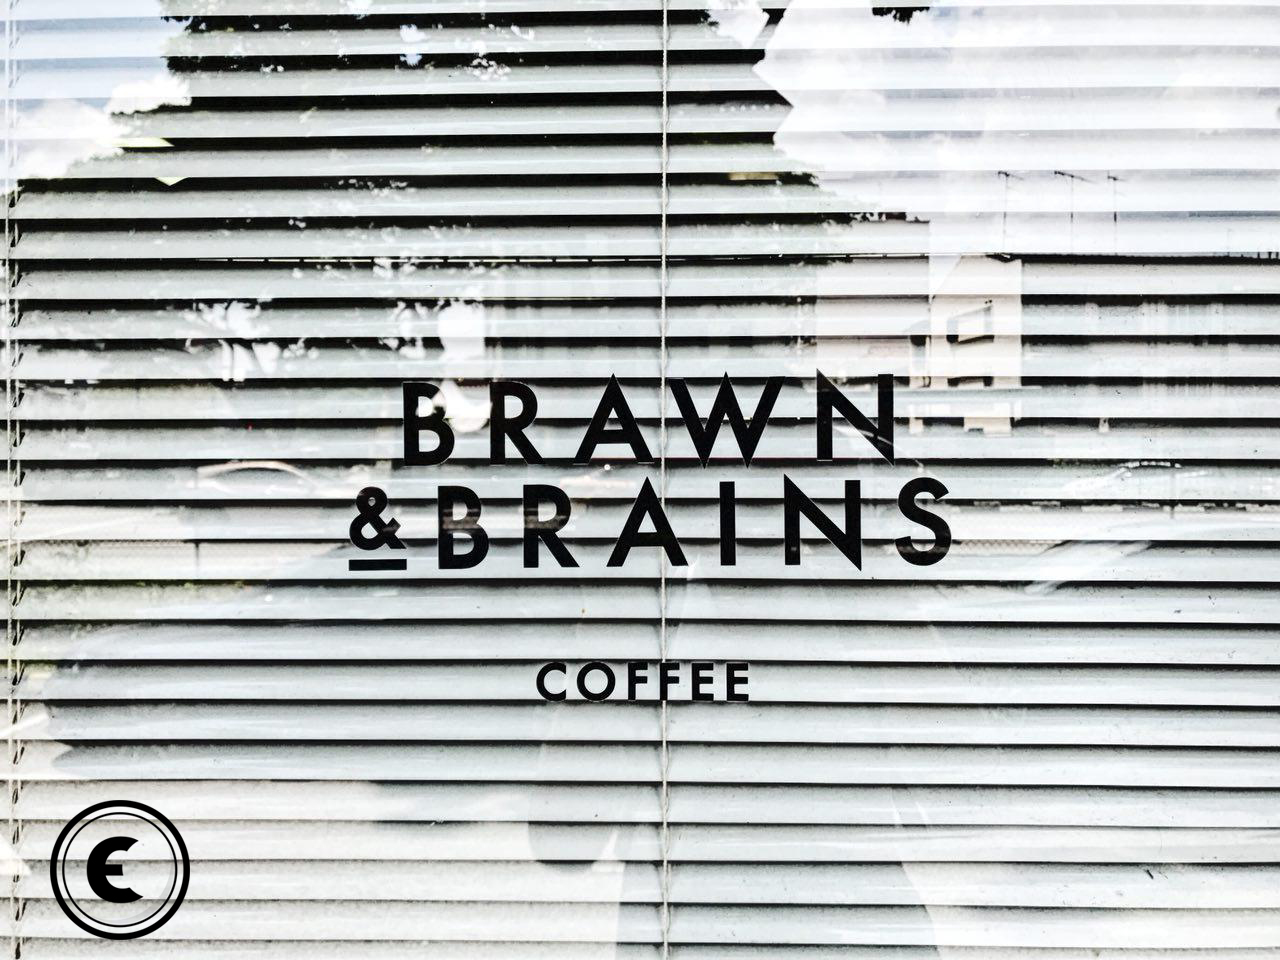 Brawn & Brains